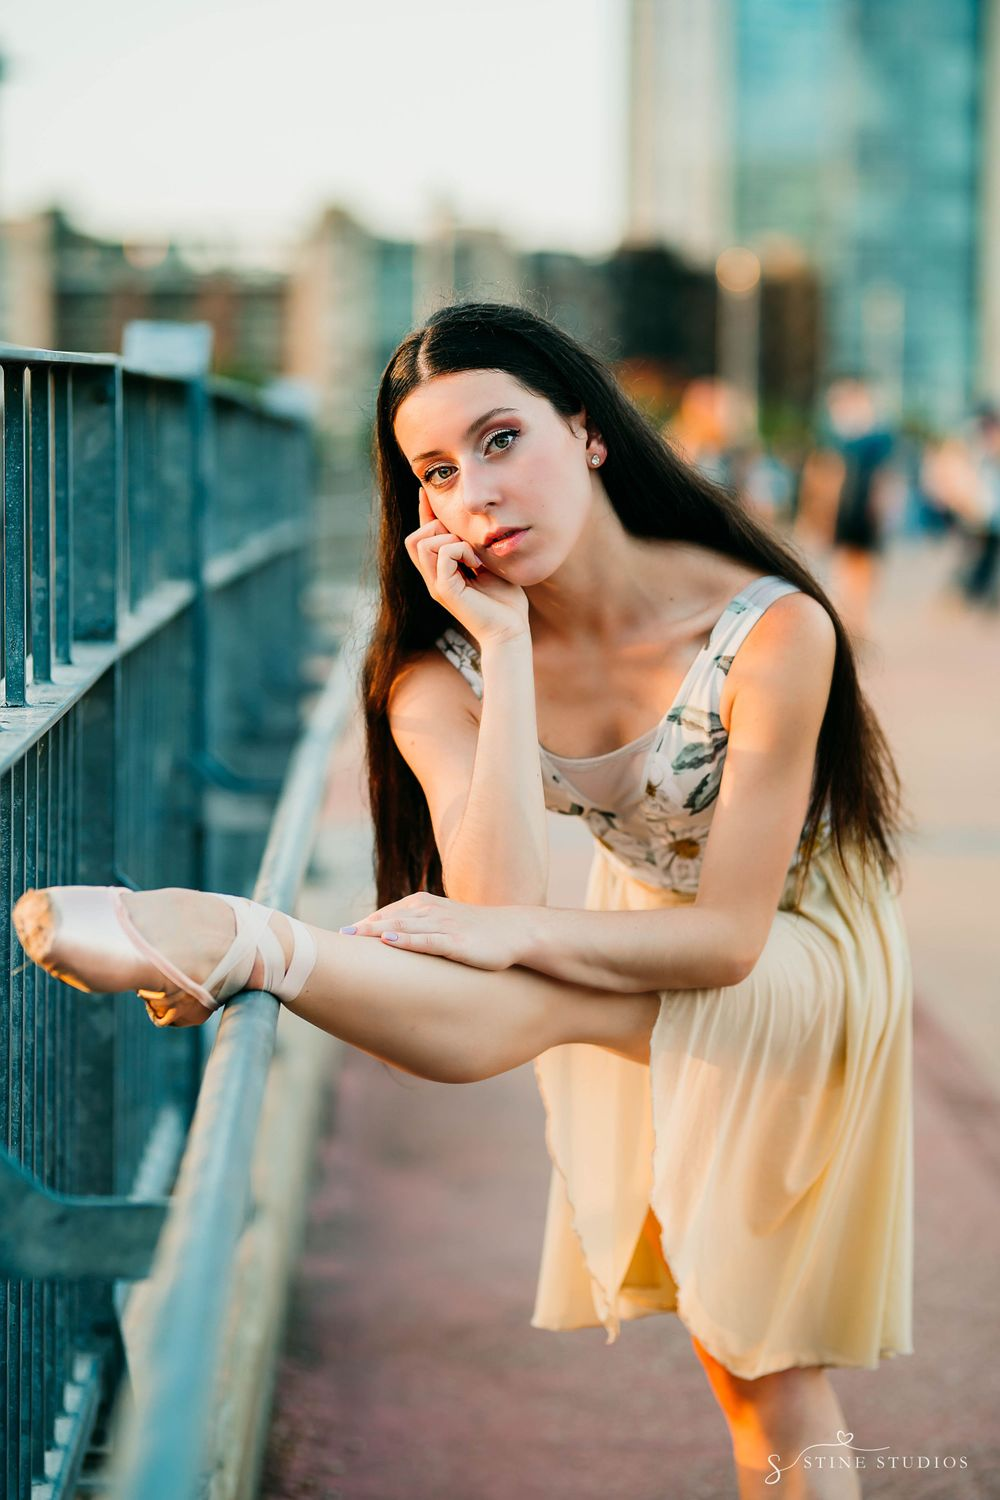 Ballet Dancer Photoshoot. Austin Bridge Photoshoot